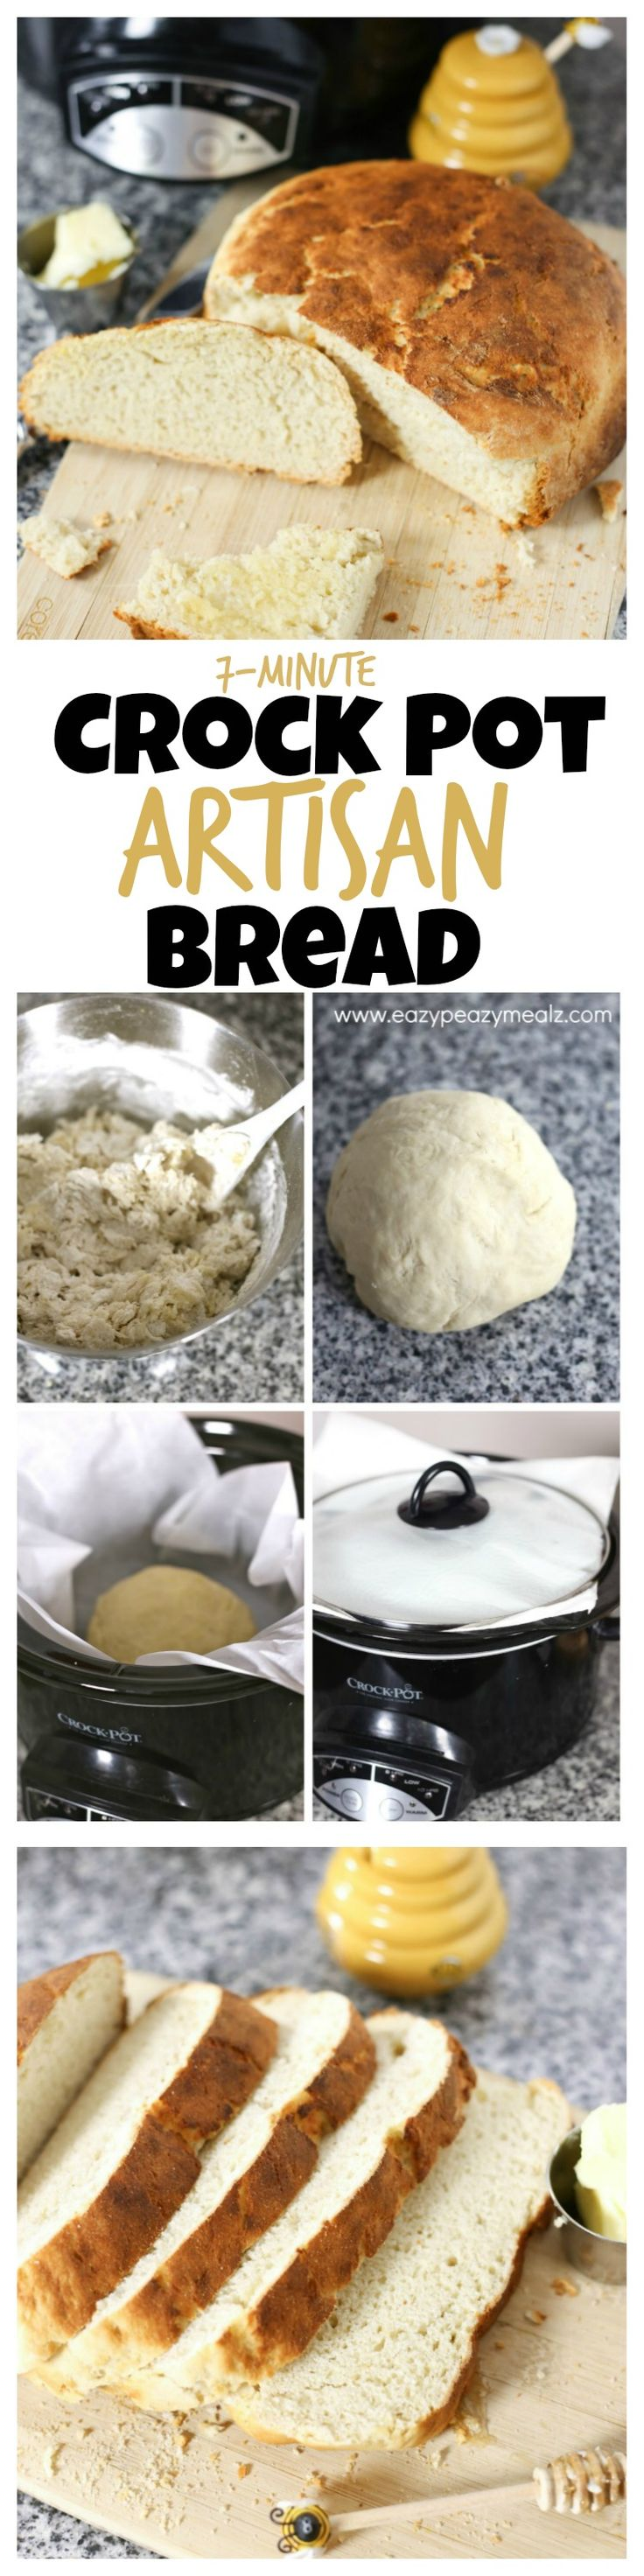 All you need is 7 minutes of your time and a slow cooker! Then you can have this AMAZING and EASY bread. - Eazy Peazy Mealz